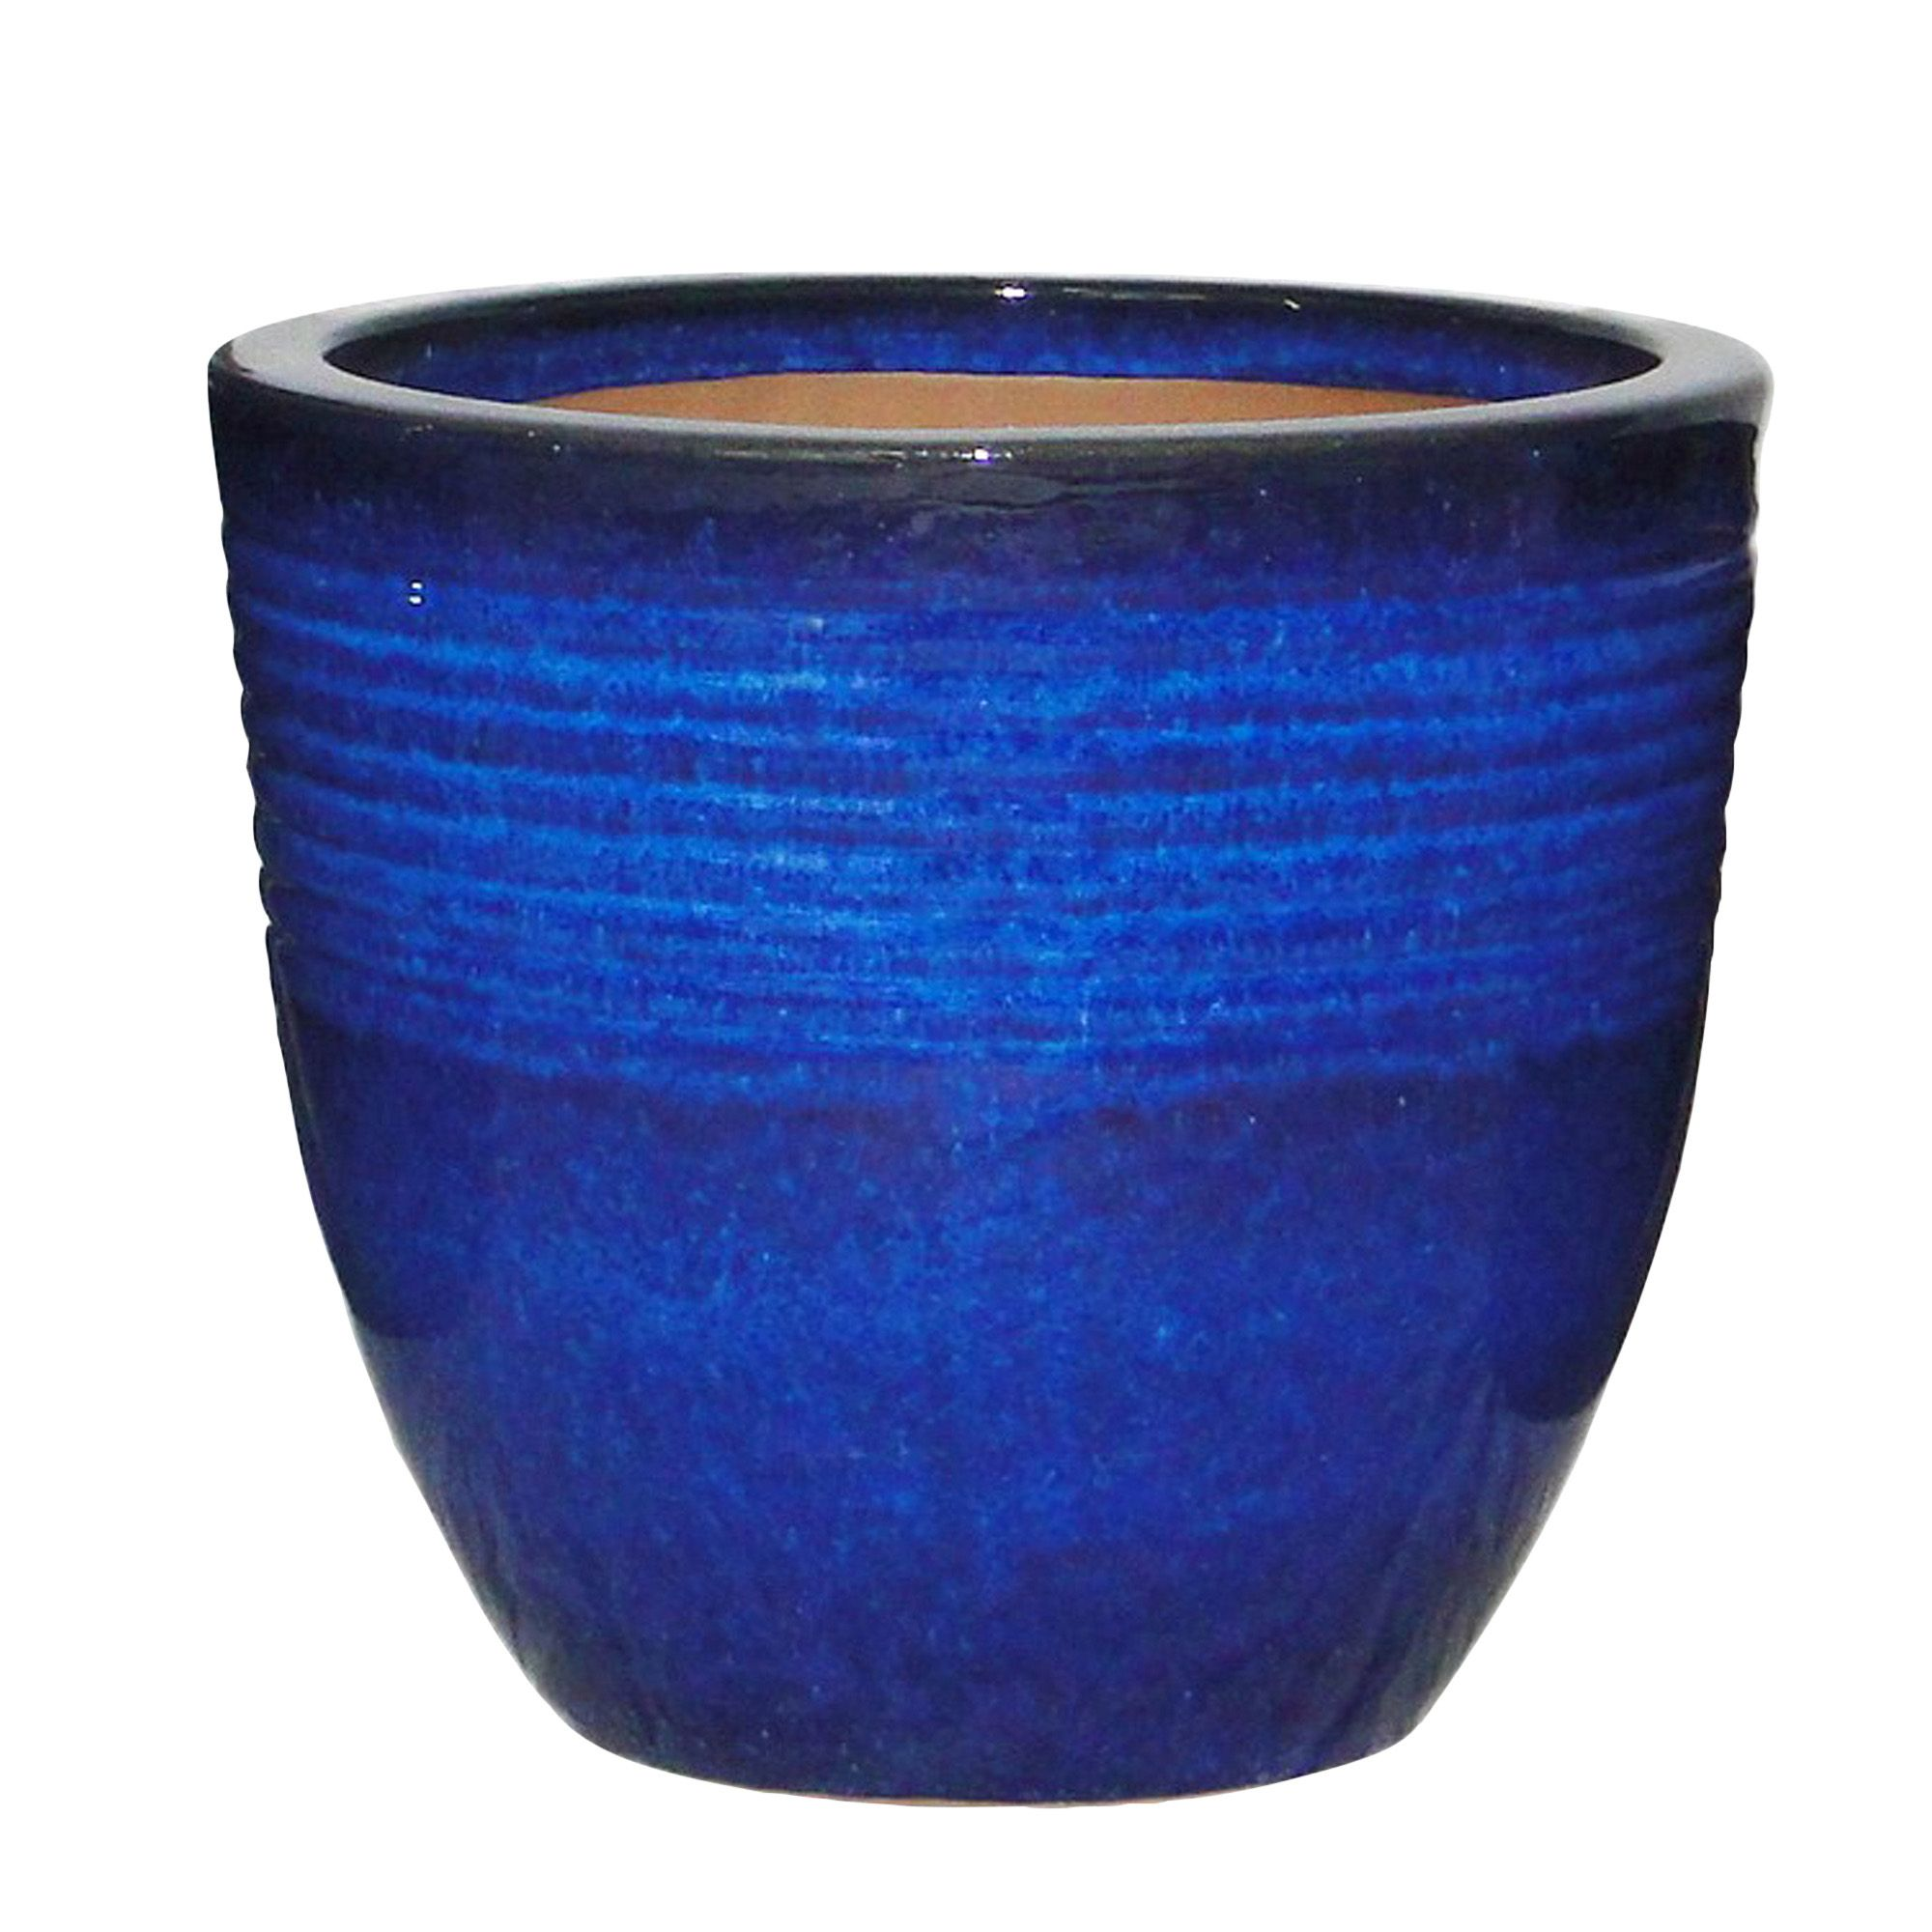 Seacourt Round Glazed Blue Pot H 245mm Dia 270mm